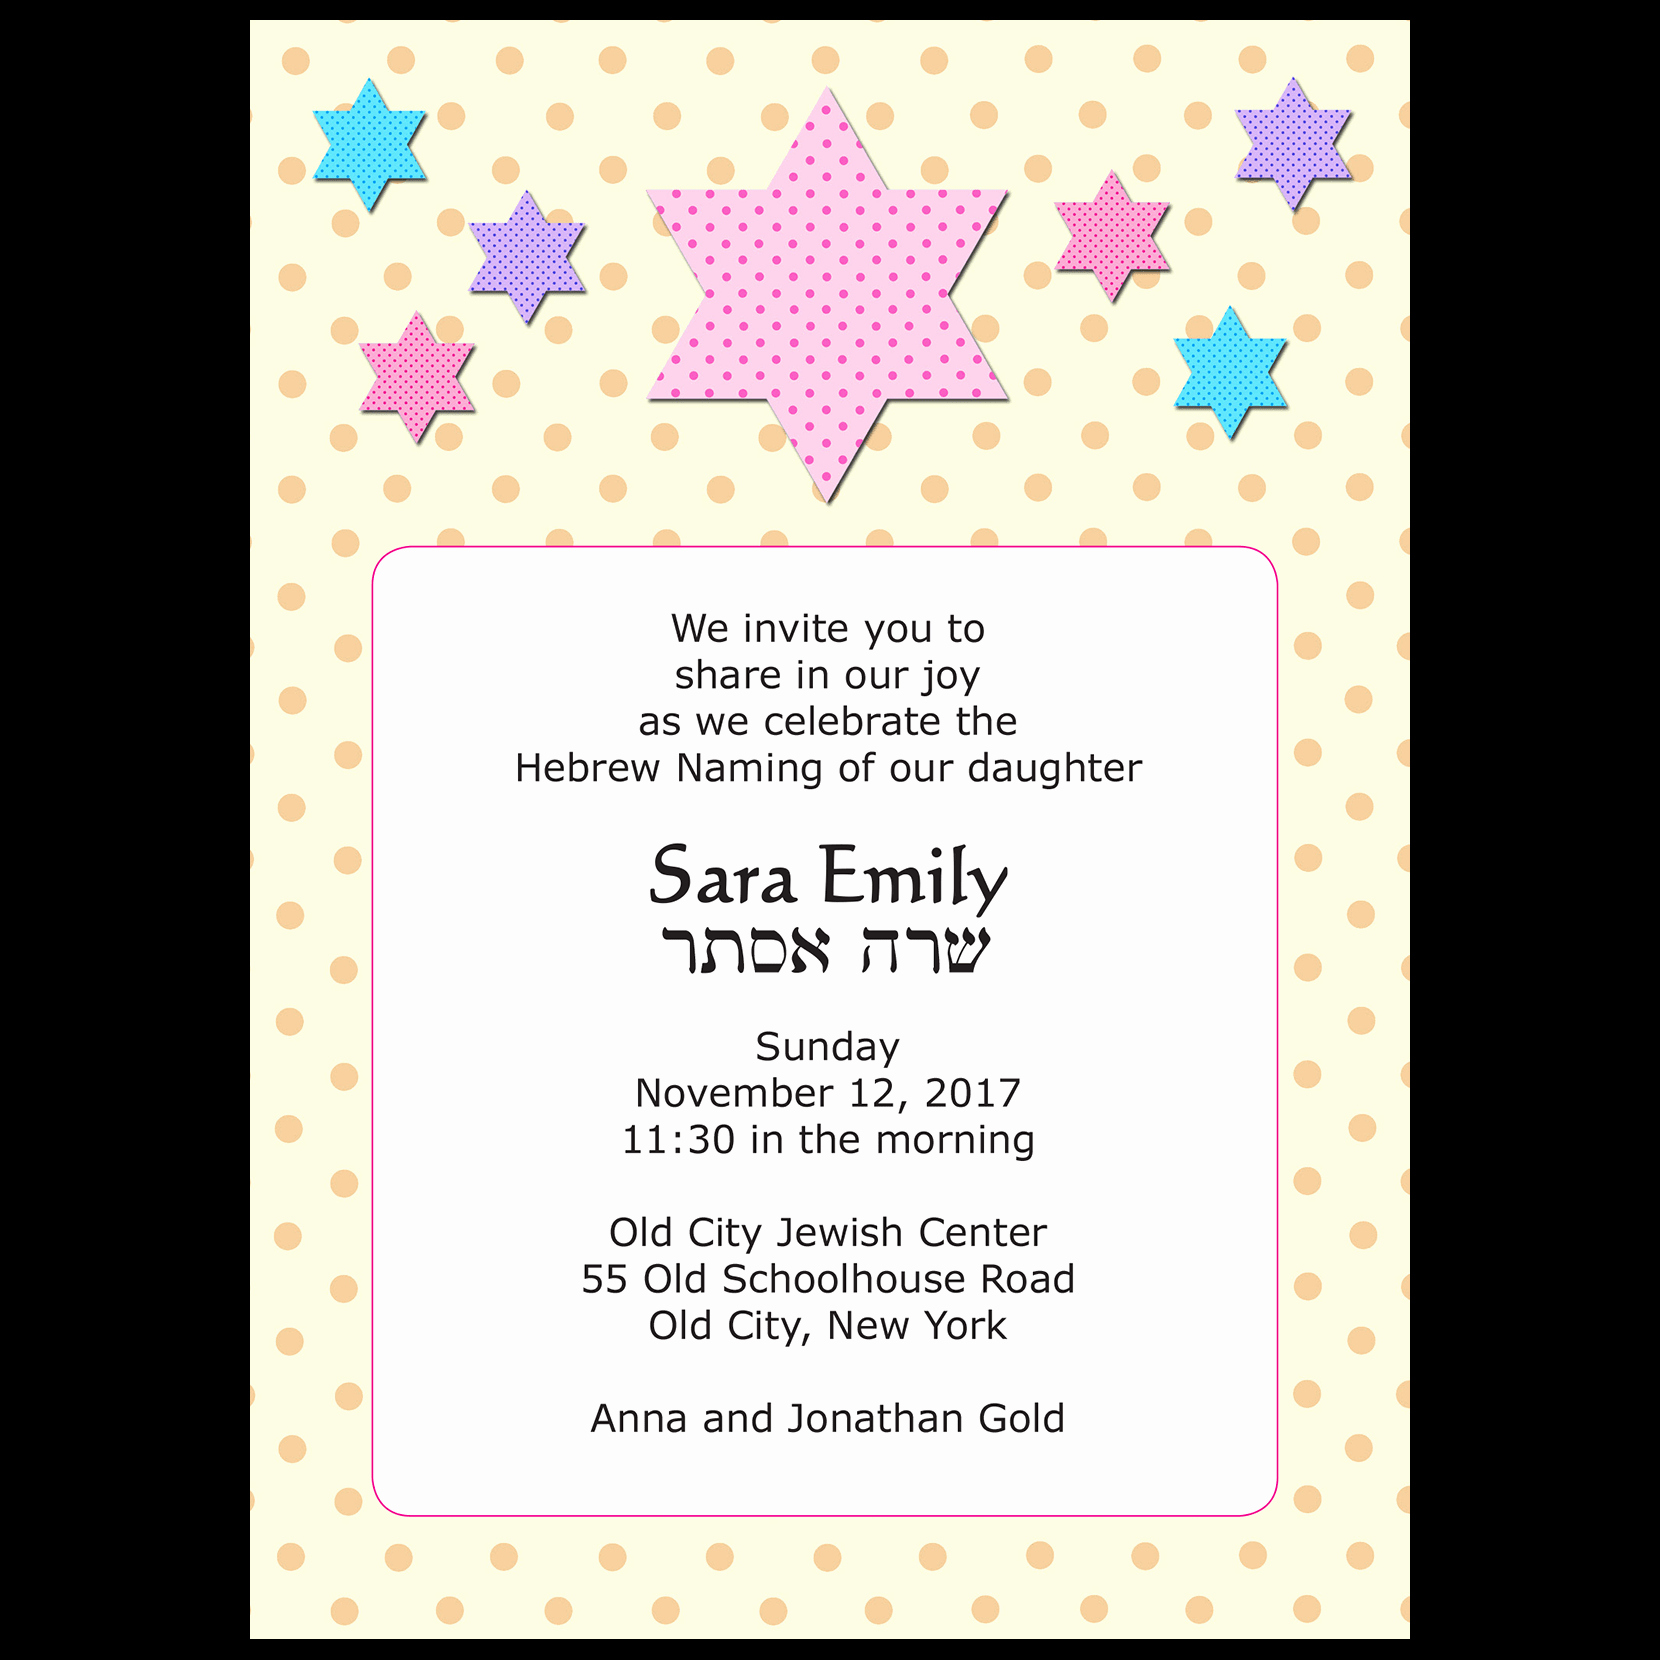 Jewish Baby Naming Invitation Unique Baby Naming Invitation Style Bn 17 ⋆ Ipv Studio